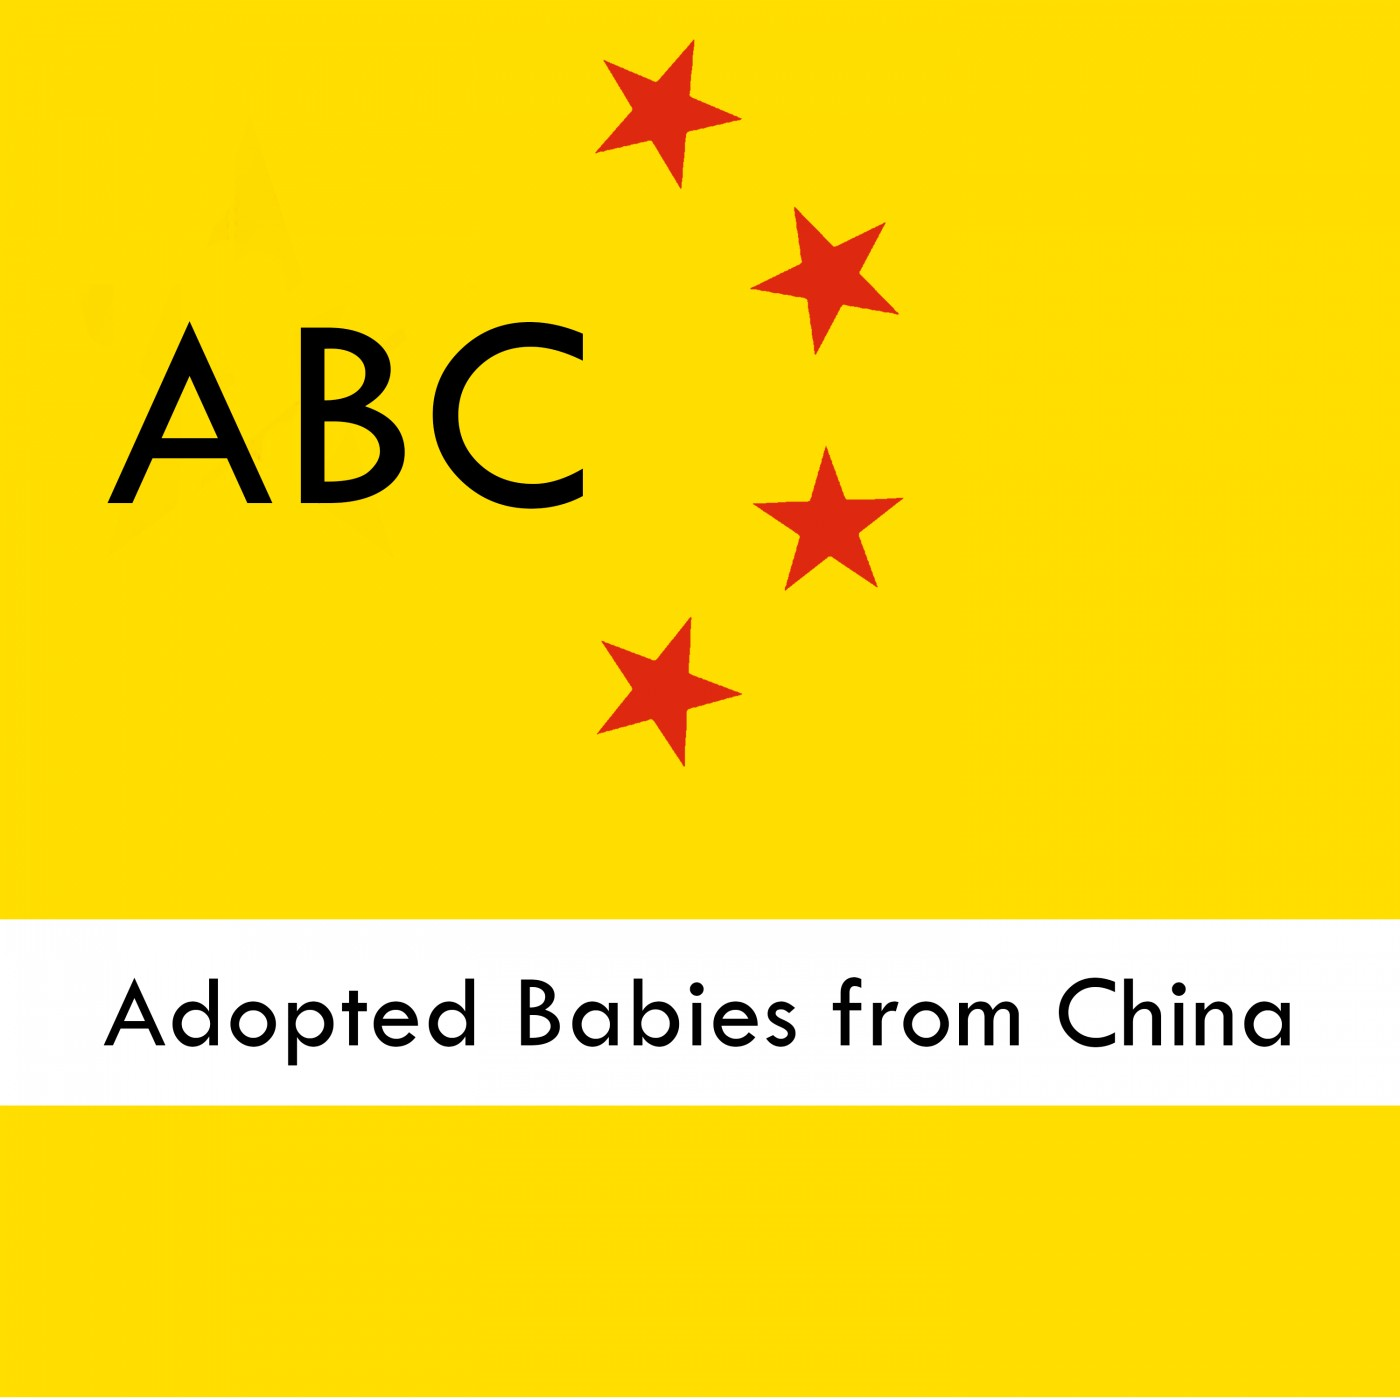 ABC Adopted Babies from China